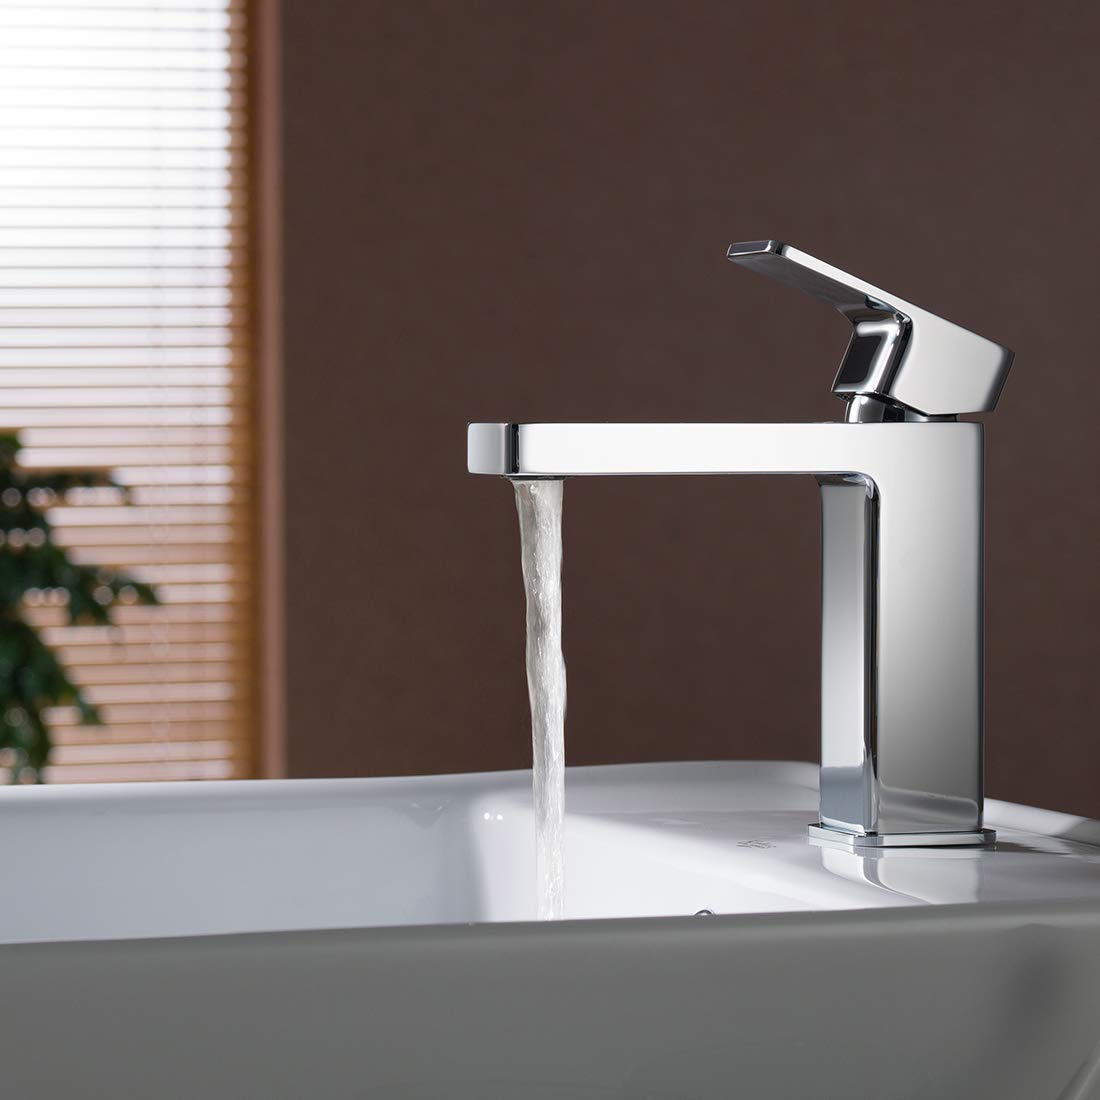 Chrome Finished. Single Handle Bathroom Brass Faucet Modern Vanity Sink Faucet Basin Mixer with Water Saving Chrome